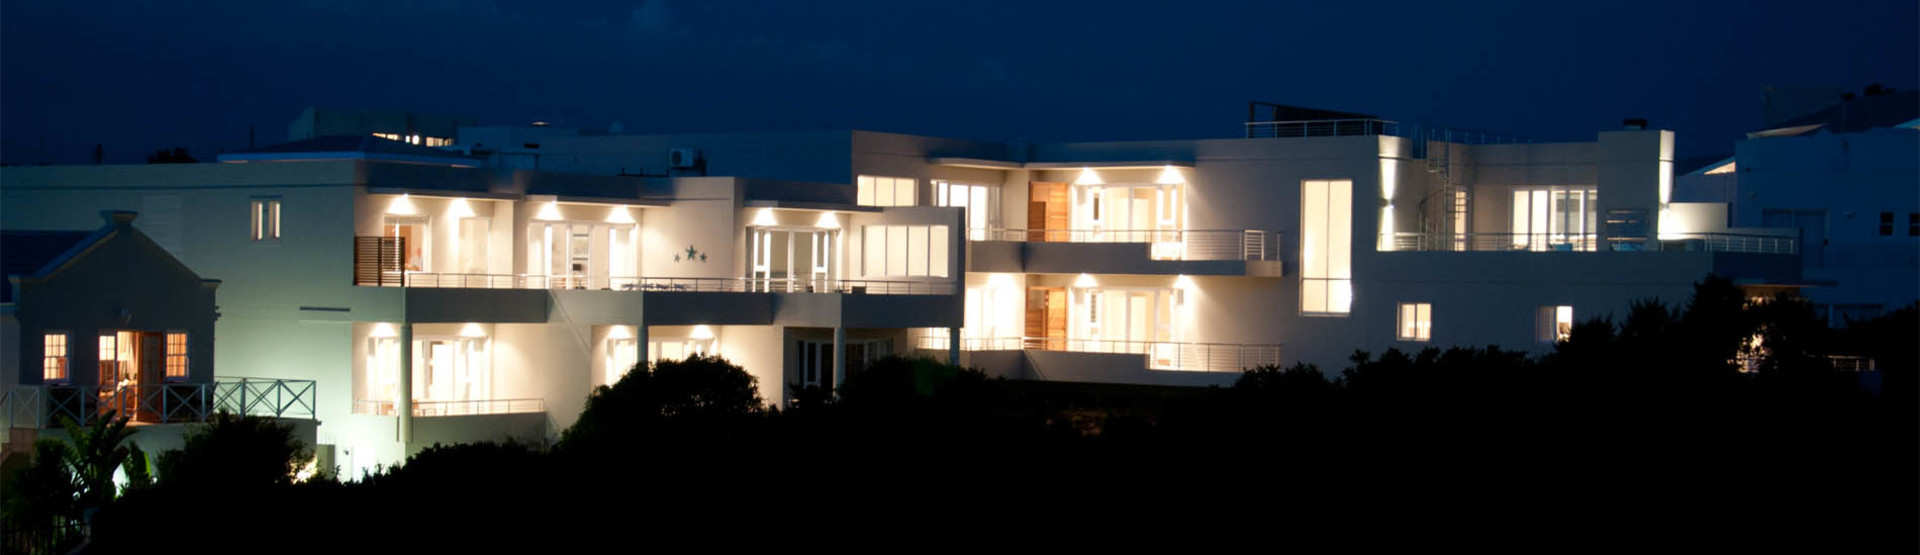 The Robberg Beach Lodge Plettenberg Bay South Africa View At Night